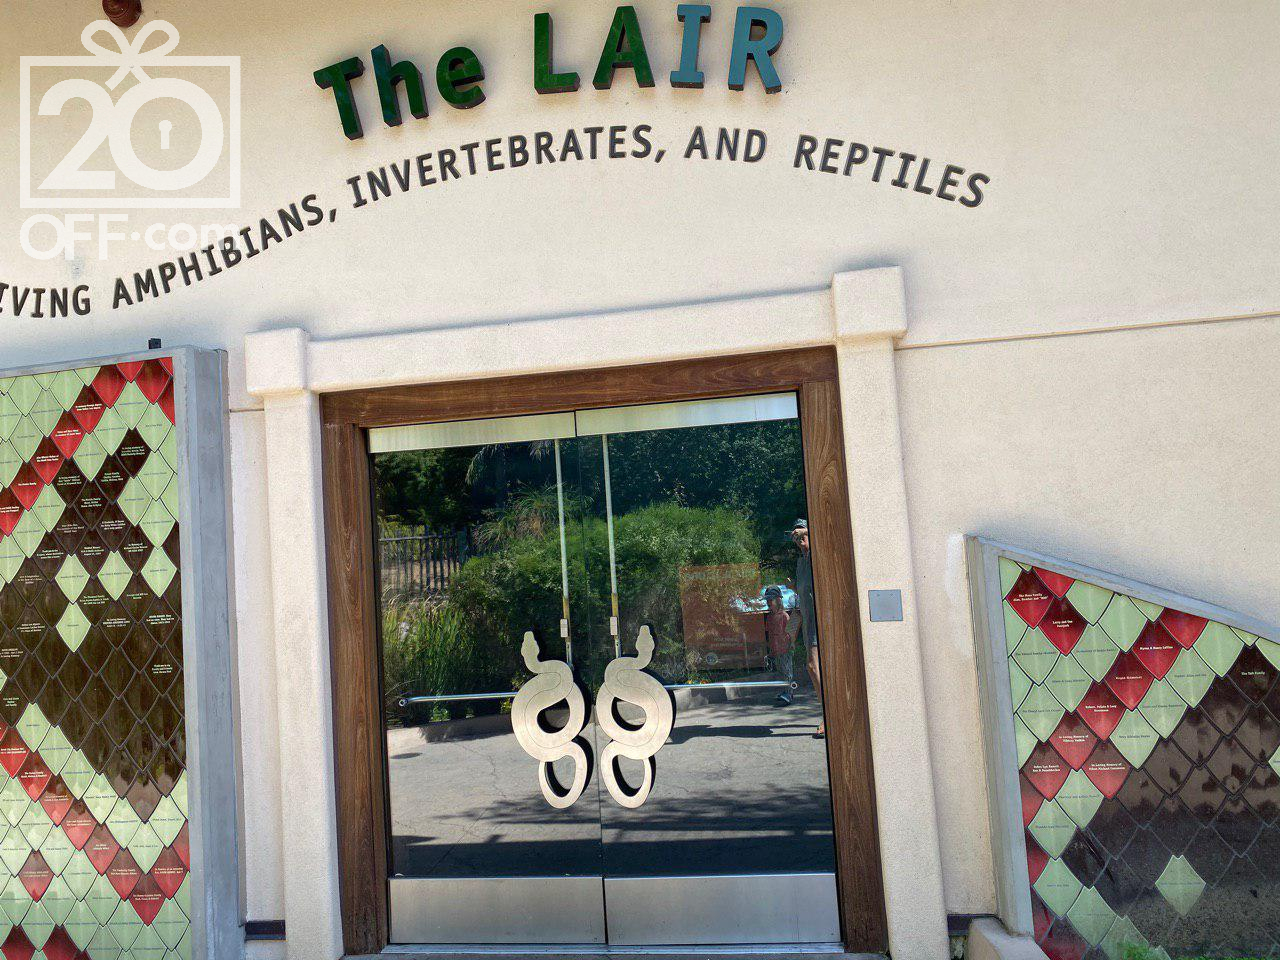 Los Angeles Zoo the Lair 2019